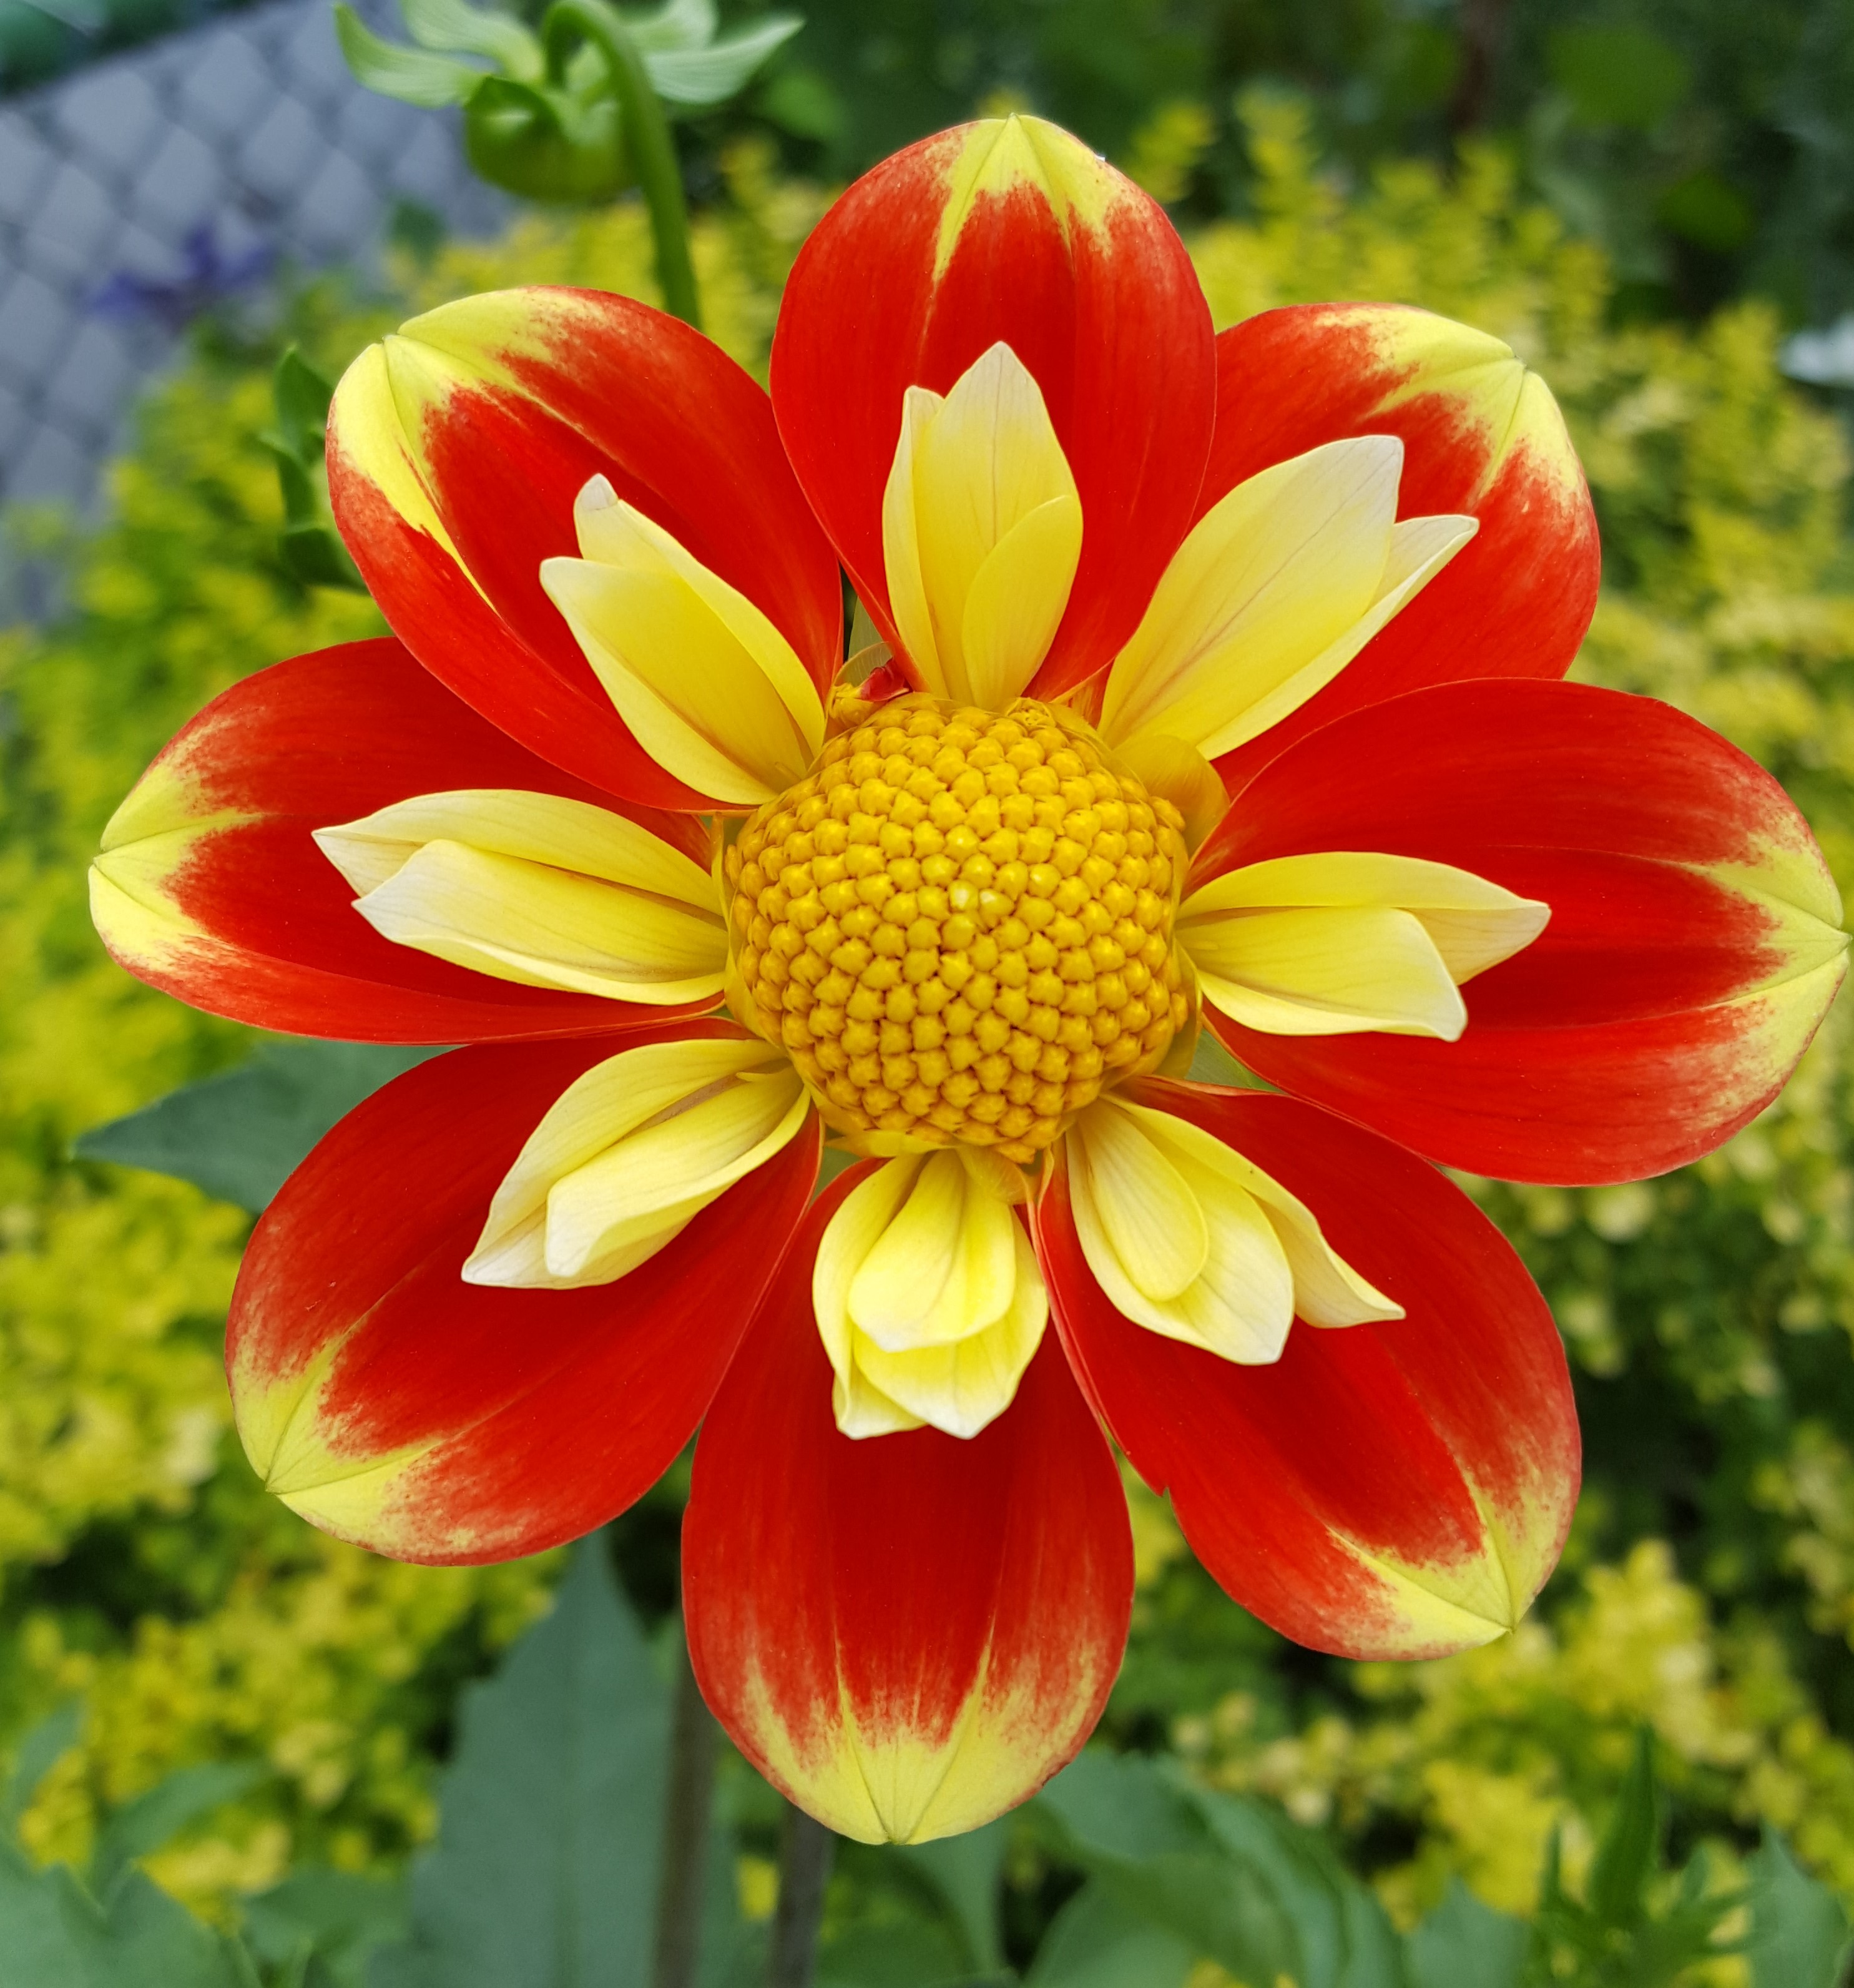 Red and yellow flower